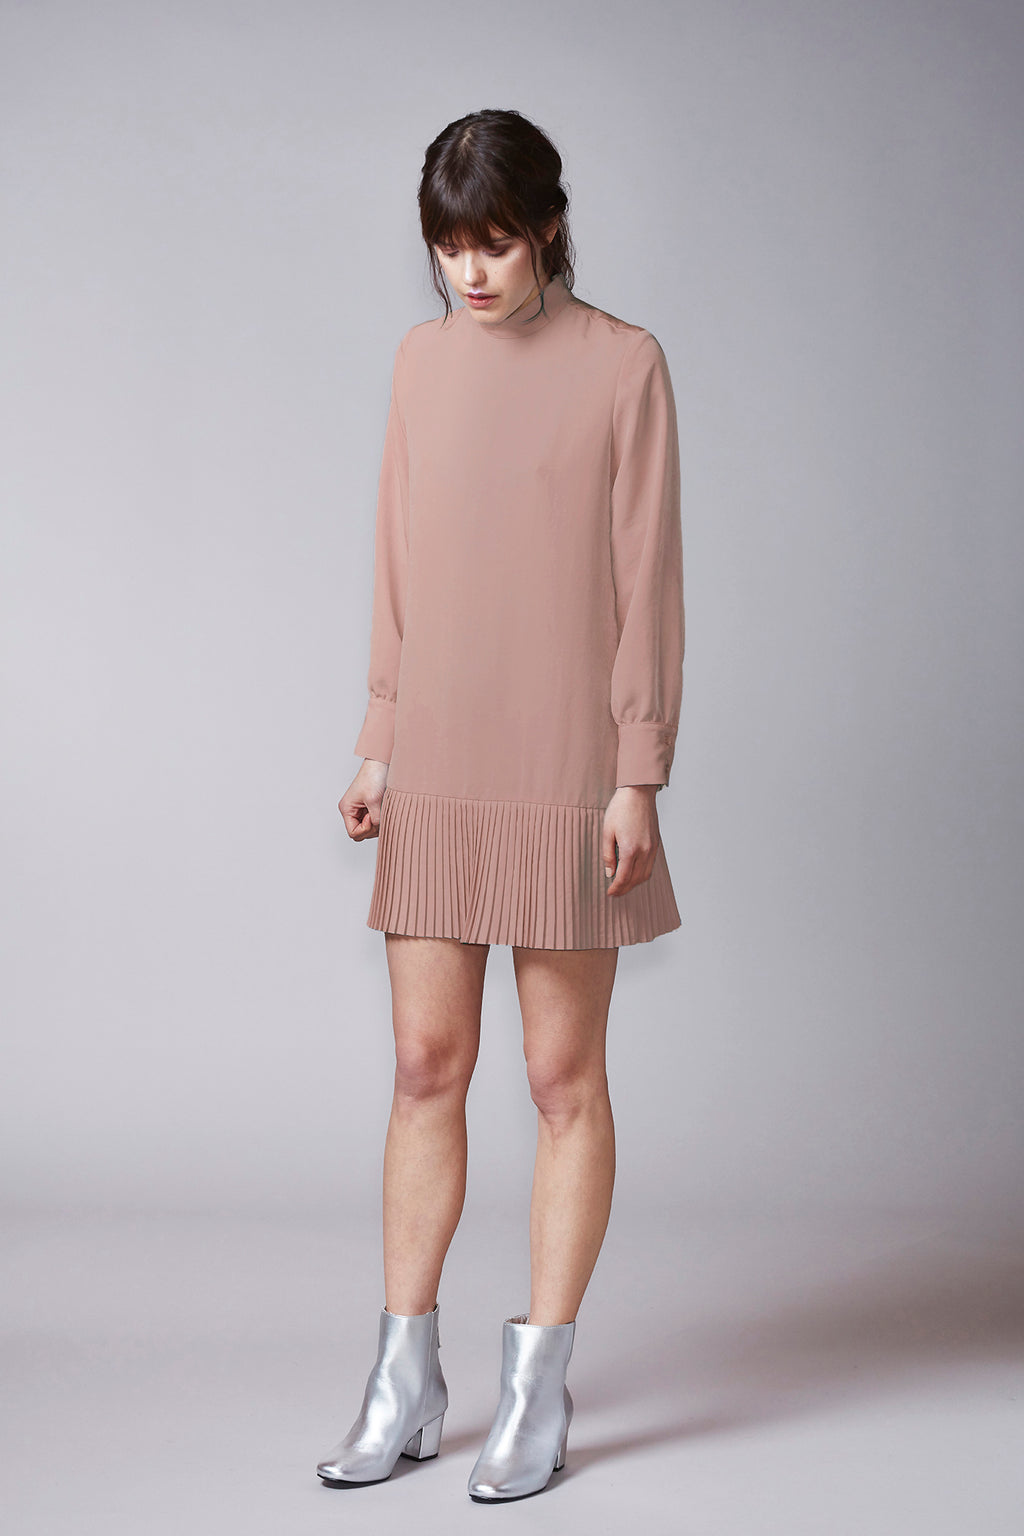 KAJO shirt dress